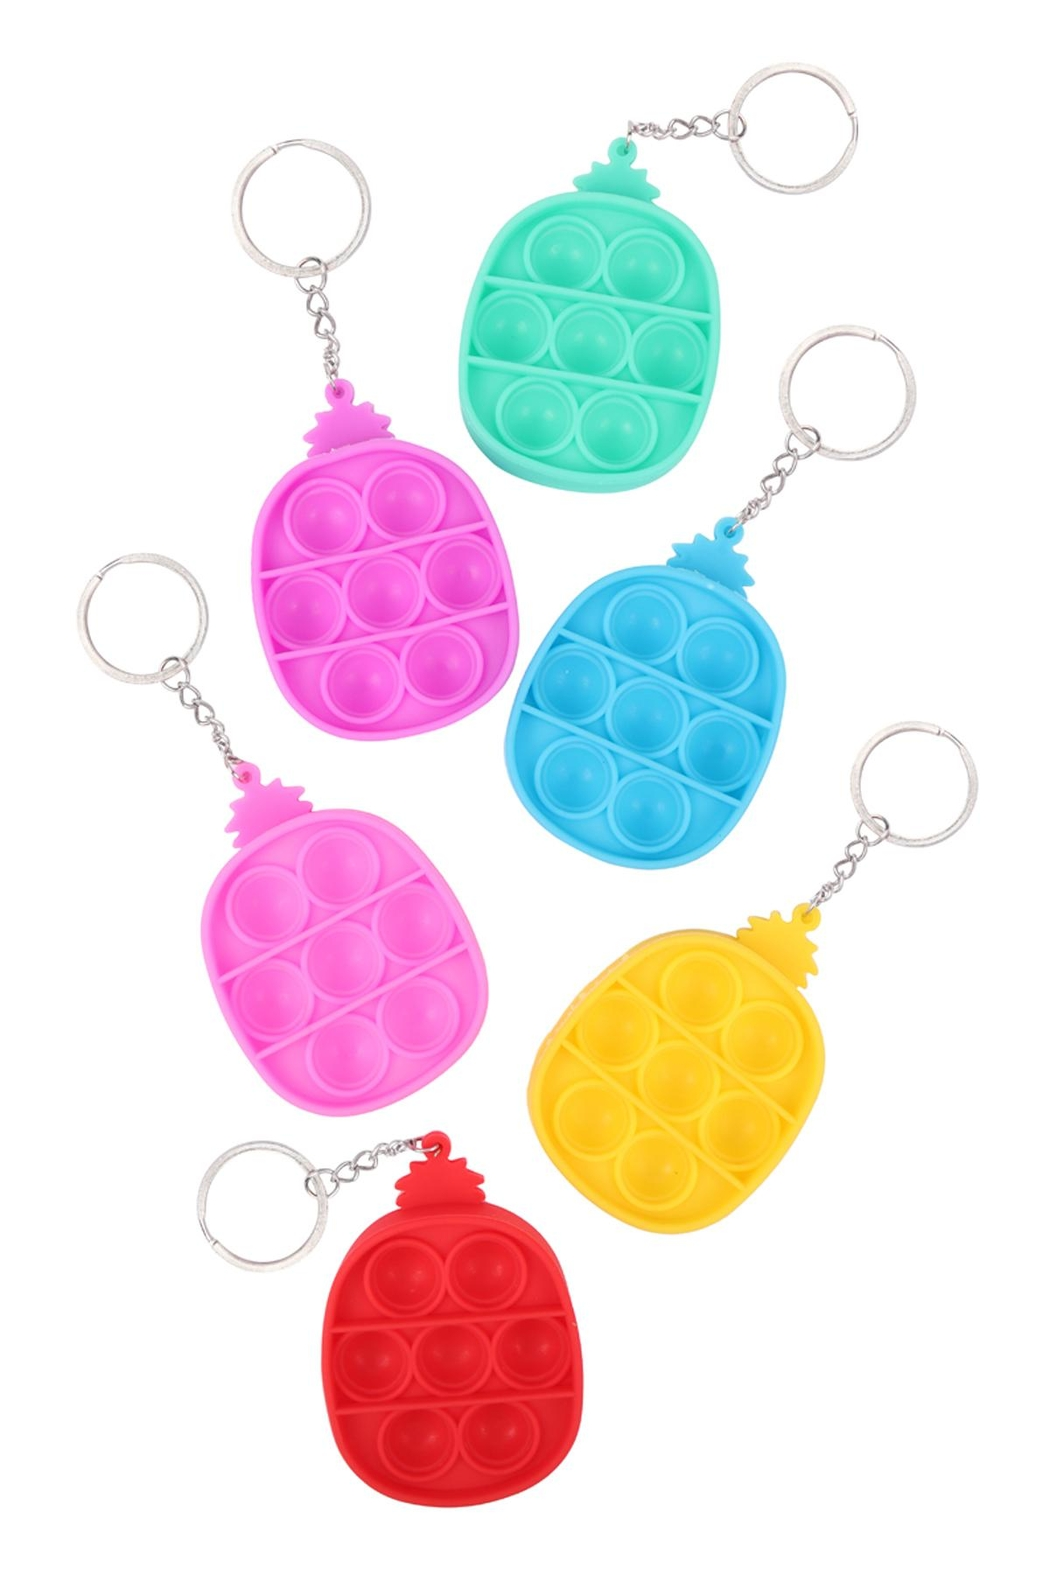 Riah Fashion Pop-Fidget-Sensory-And-Stress-Reliever-Pineapple-Multicolor-To-Keychain - Main Image